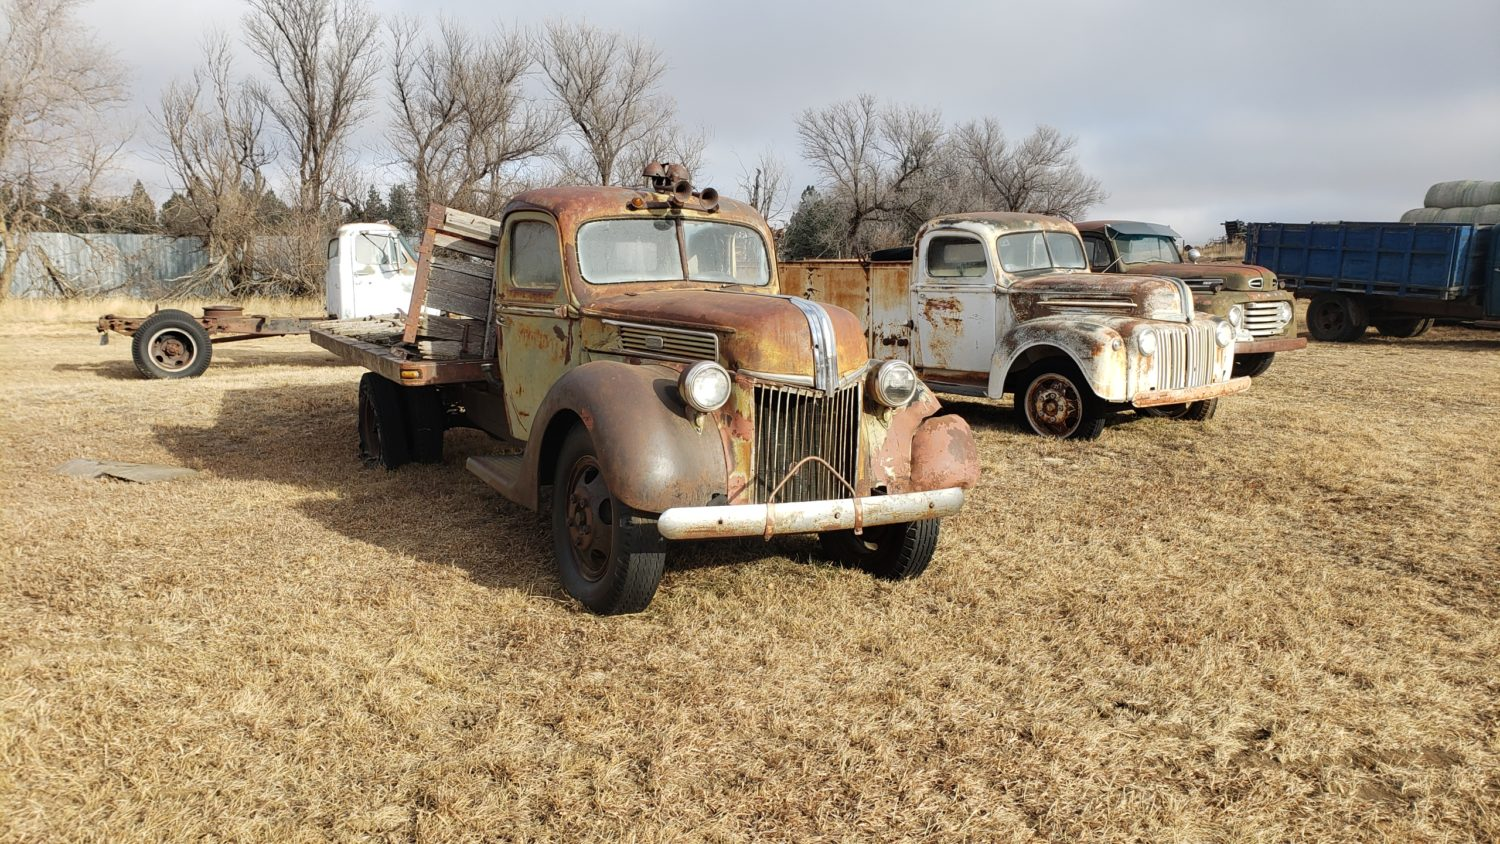 Fabulous Collector Cars, Antique Tractors, Memorabilia & More! The Krinke Collection - image 10